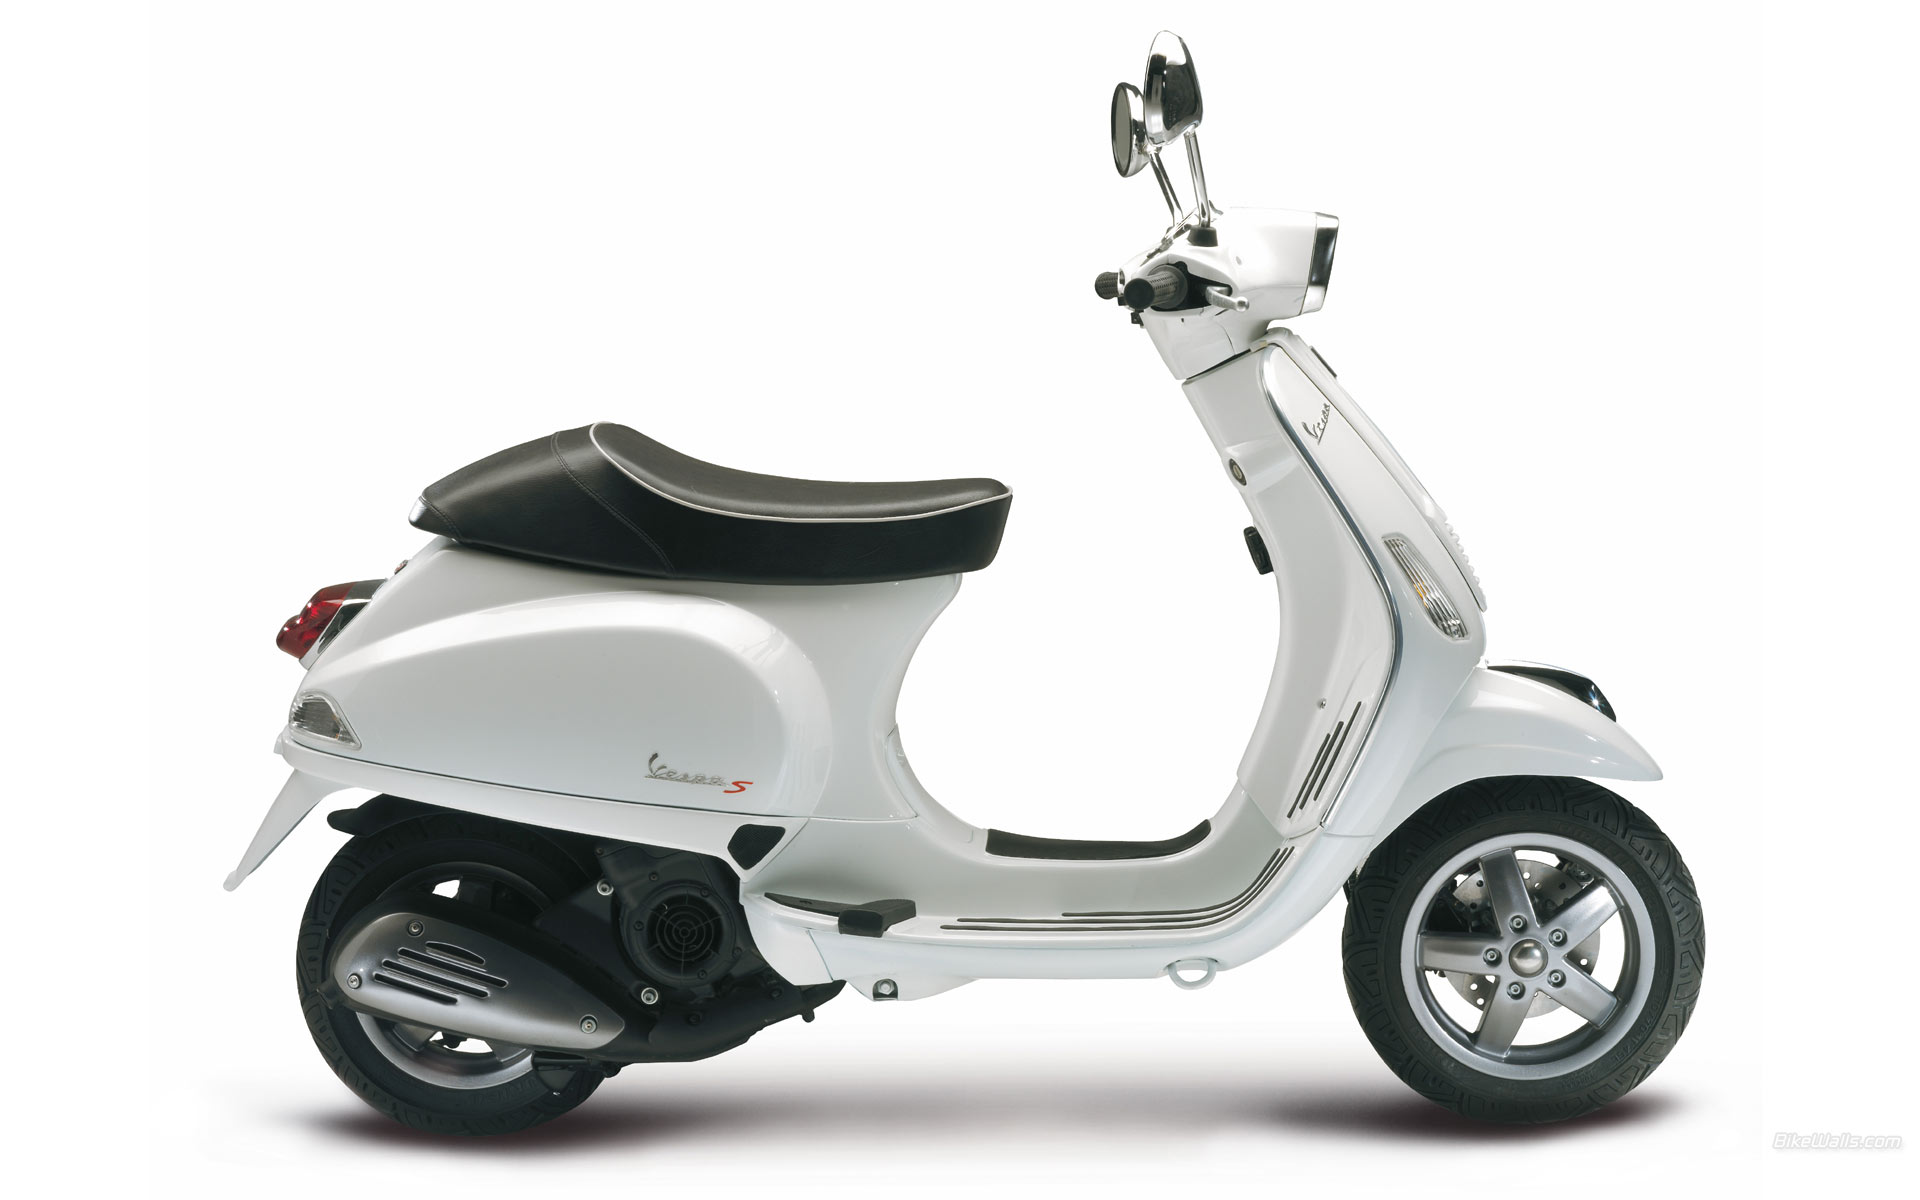 The Piaggio / Vespa Rumor Roundup | ScooterFilevespa